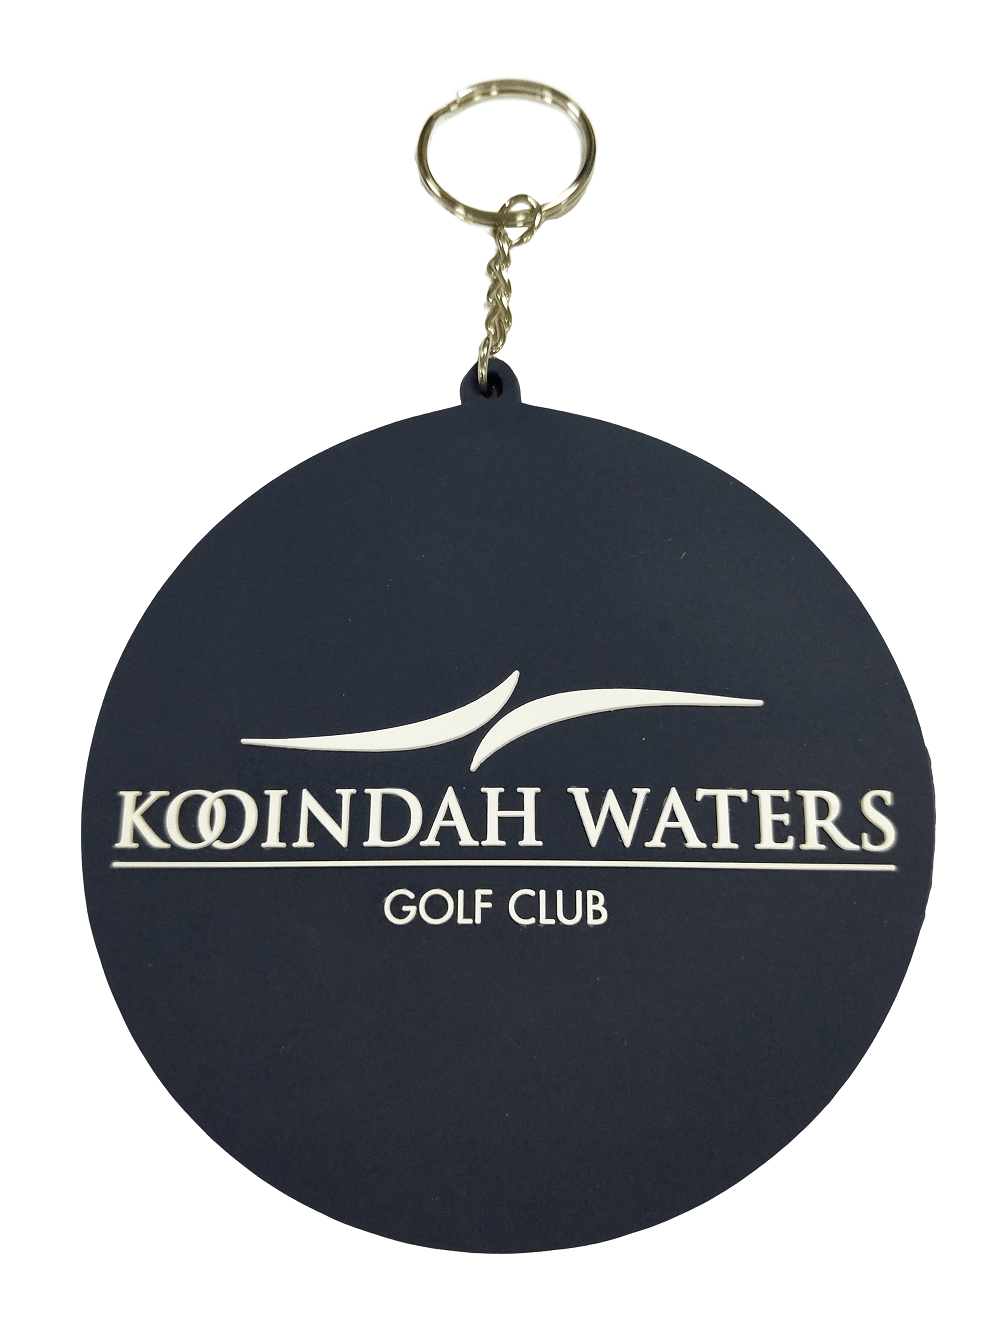 Circular personalised rubber keyrings for a golf club with 1-colour logo on the front in 2D.